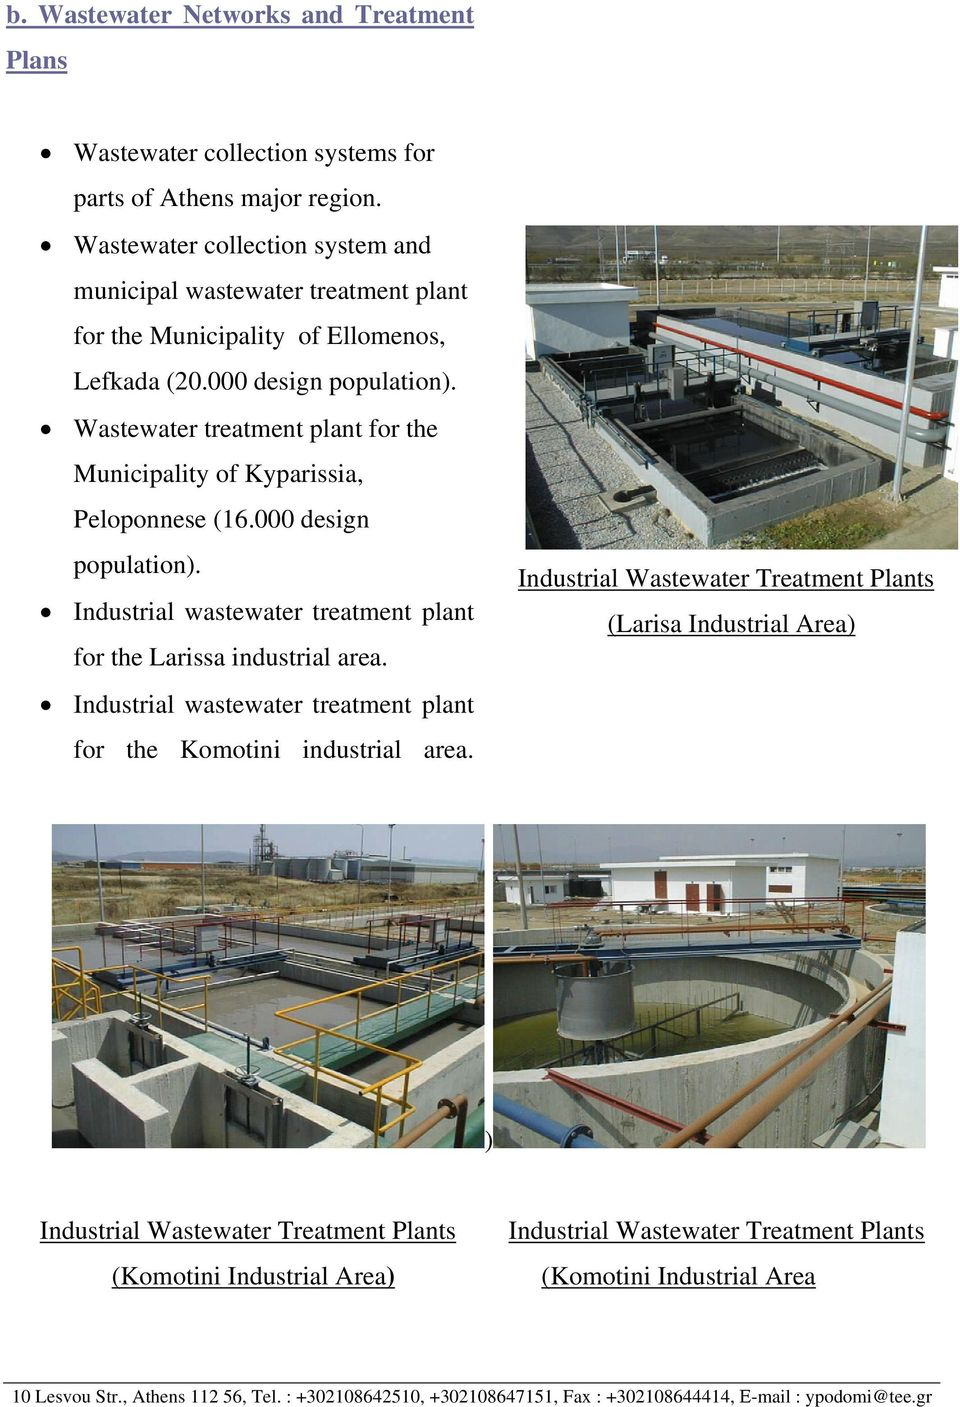 Wastewater treatment plant for the Municipality of Kyparissia, Peloponnese (6.000 design population). Industrial wastewater treatment plant for the Larissa industrial area.